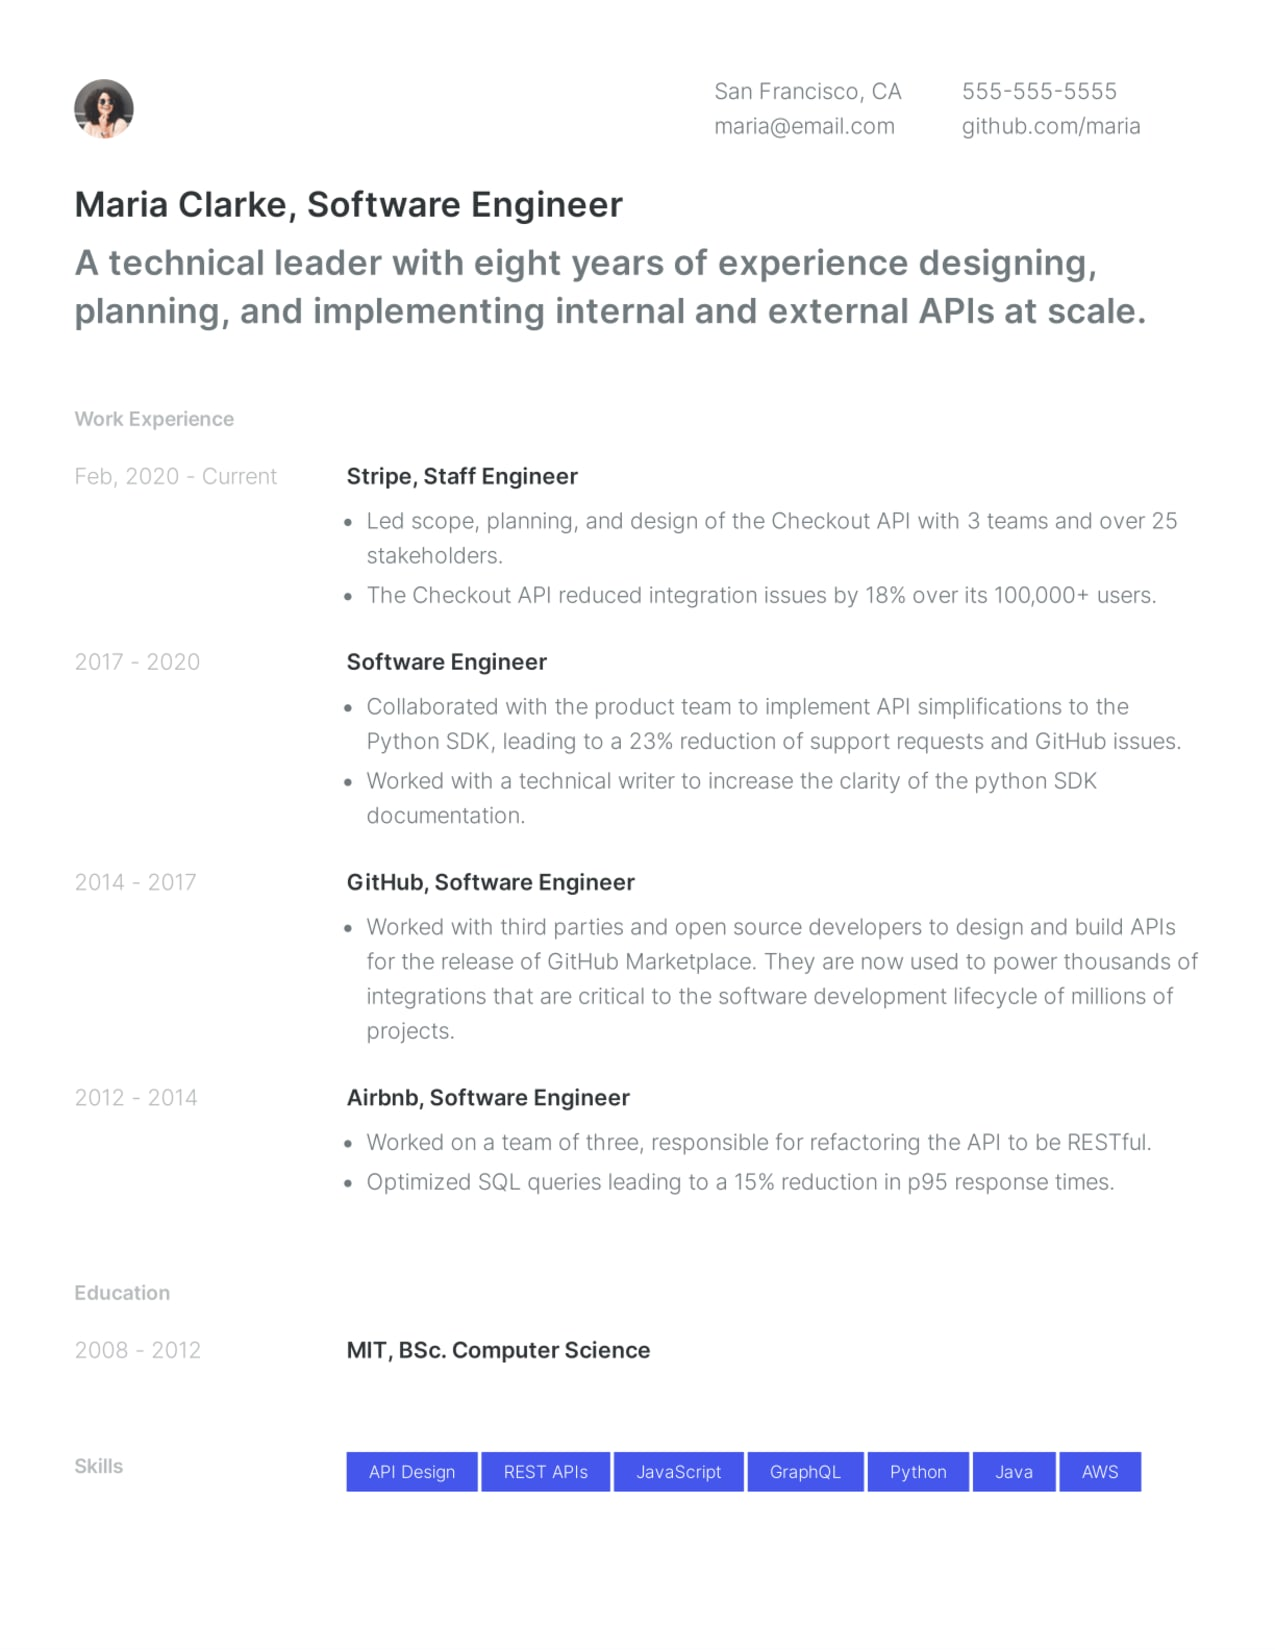 Software engineer resume example made with Standard Resume's LinkedIn resume builder.